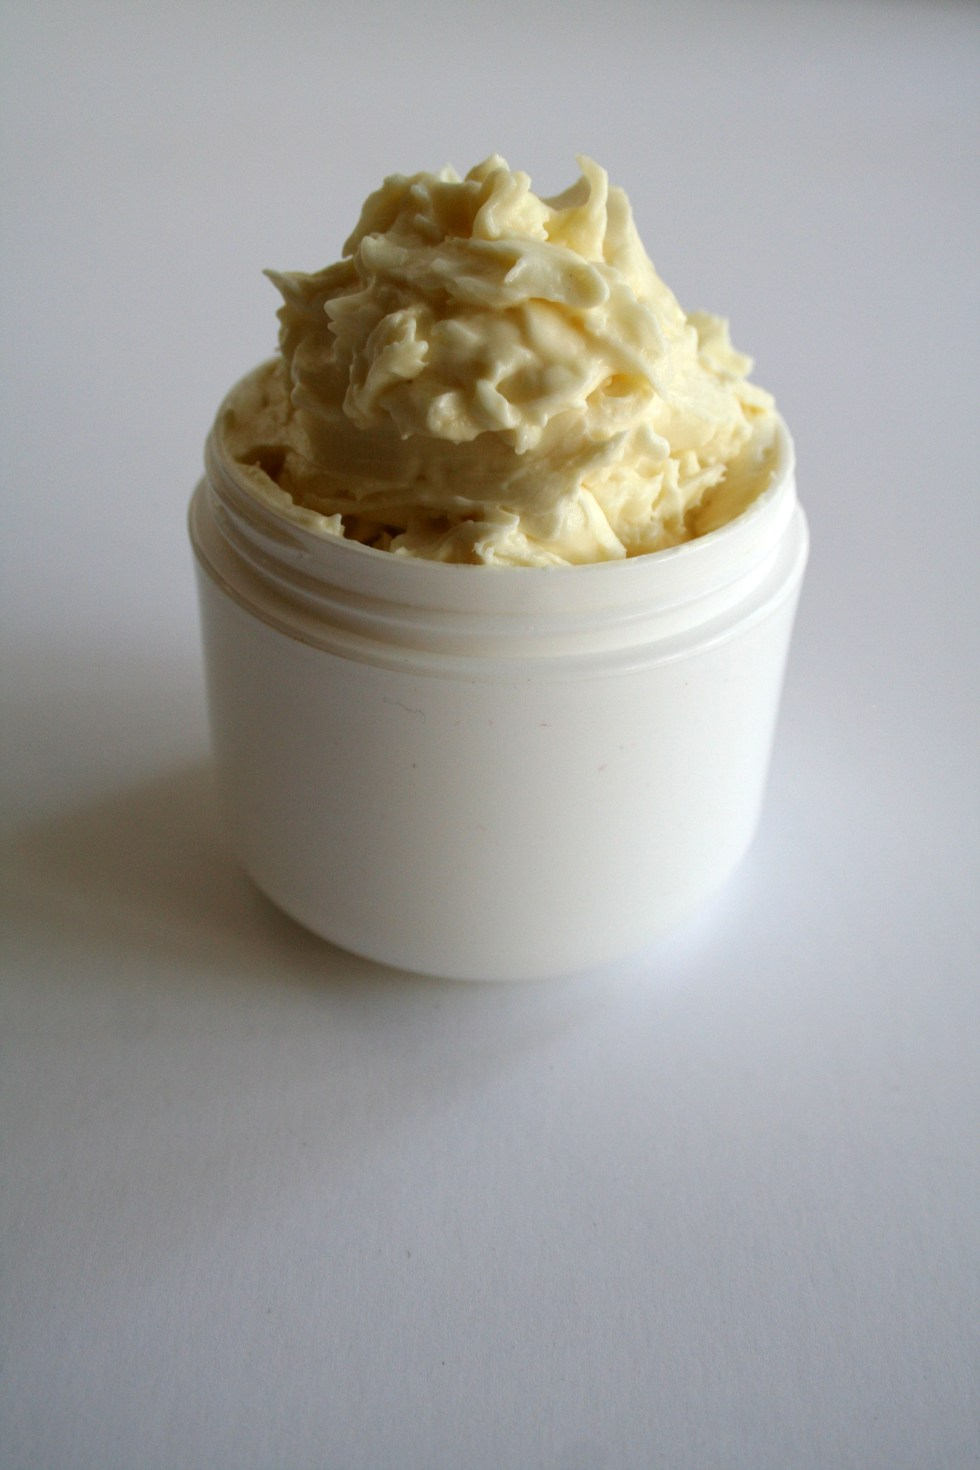 Mint Chocolate, Chocolate Almond, and Basic Body Butter - This luxurious body butter is easy to make. It is all natural, so it is good for your skin.